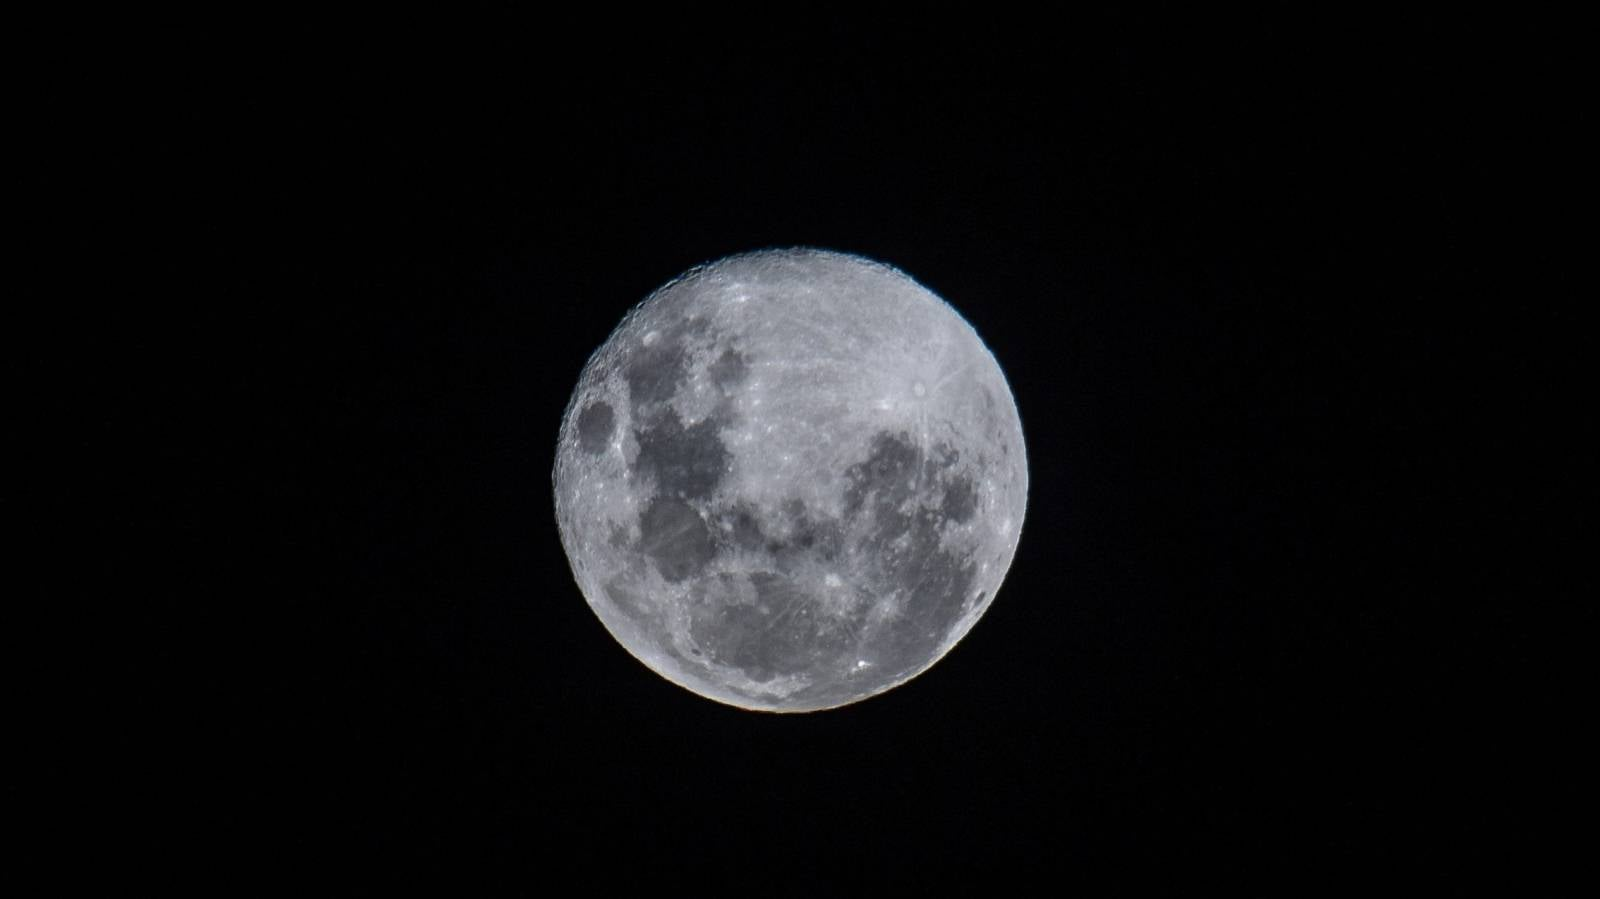 Don't blame the full moon for your poor sleep